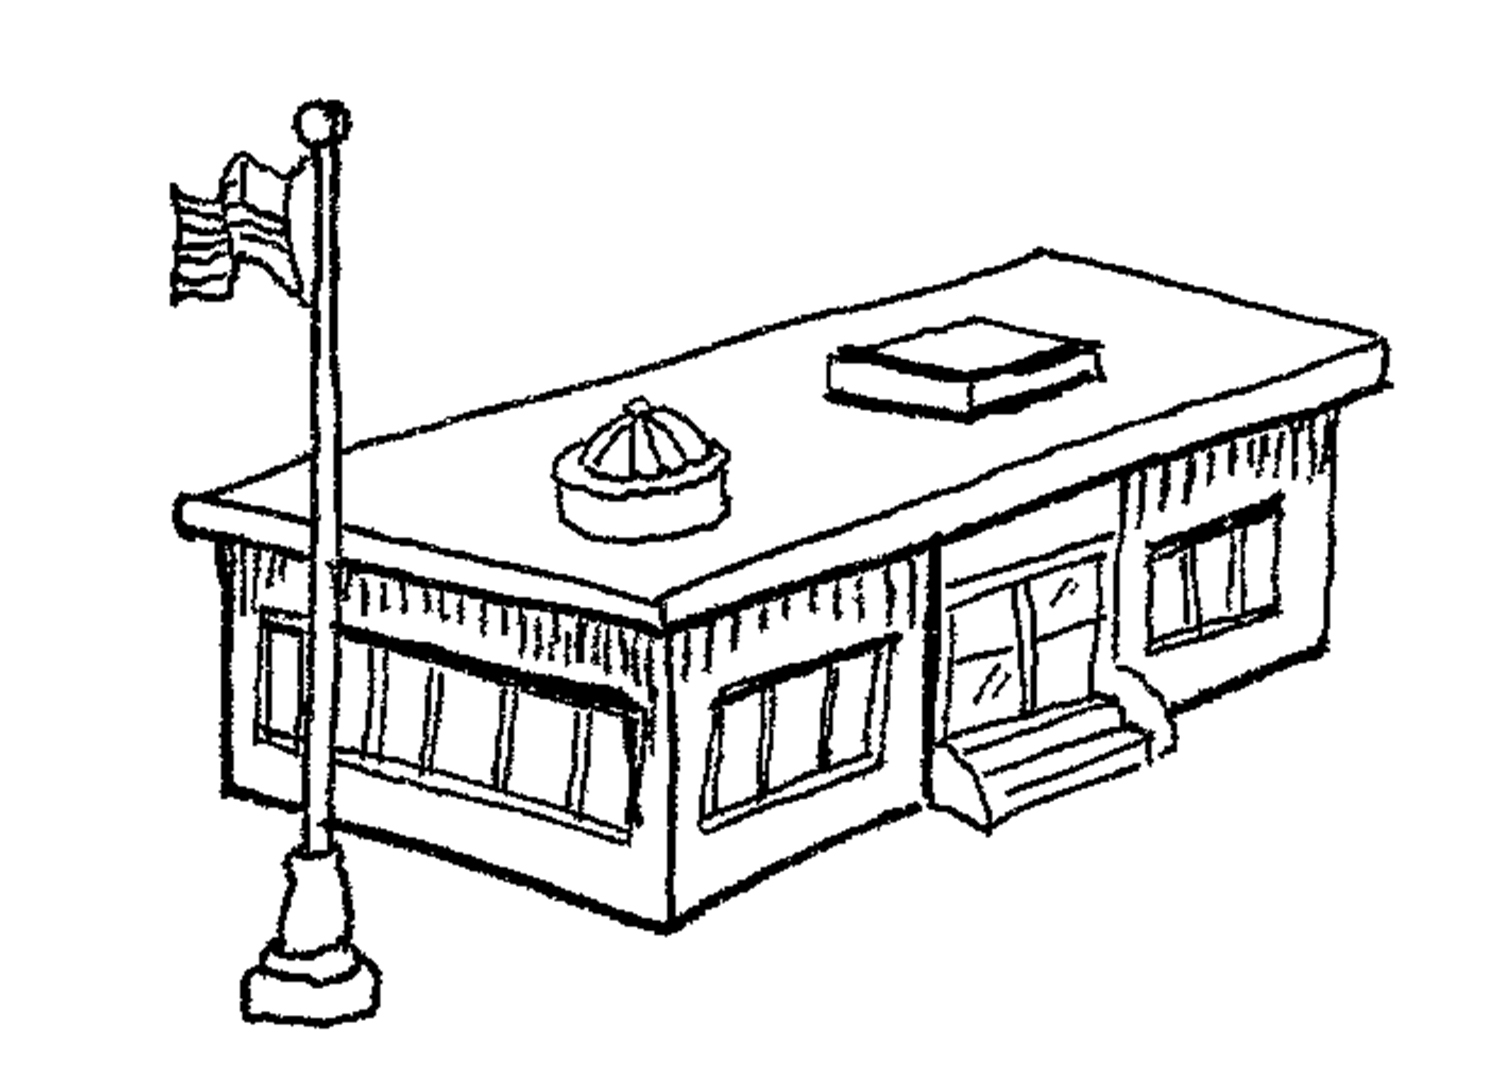 school clipart coloring school house outline free download on clipartmag clipart coloring school